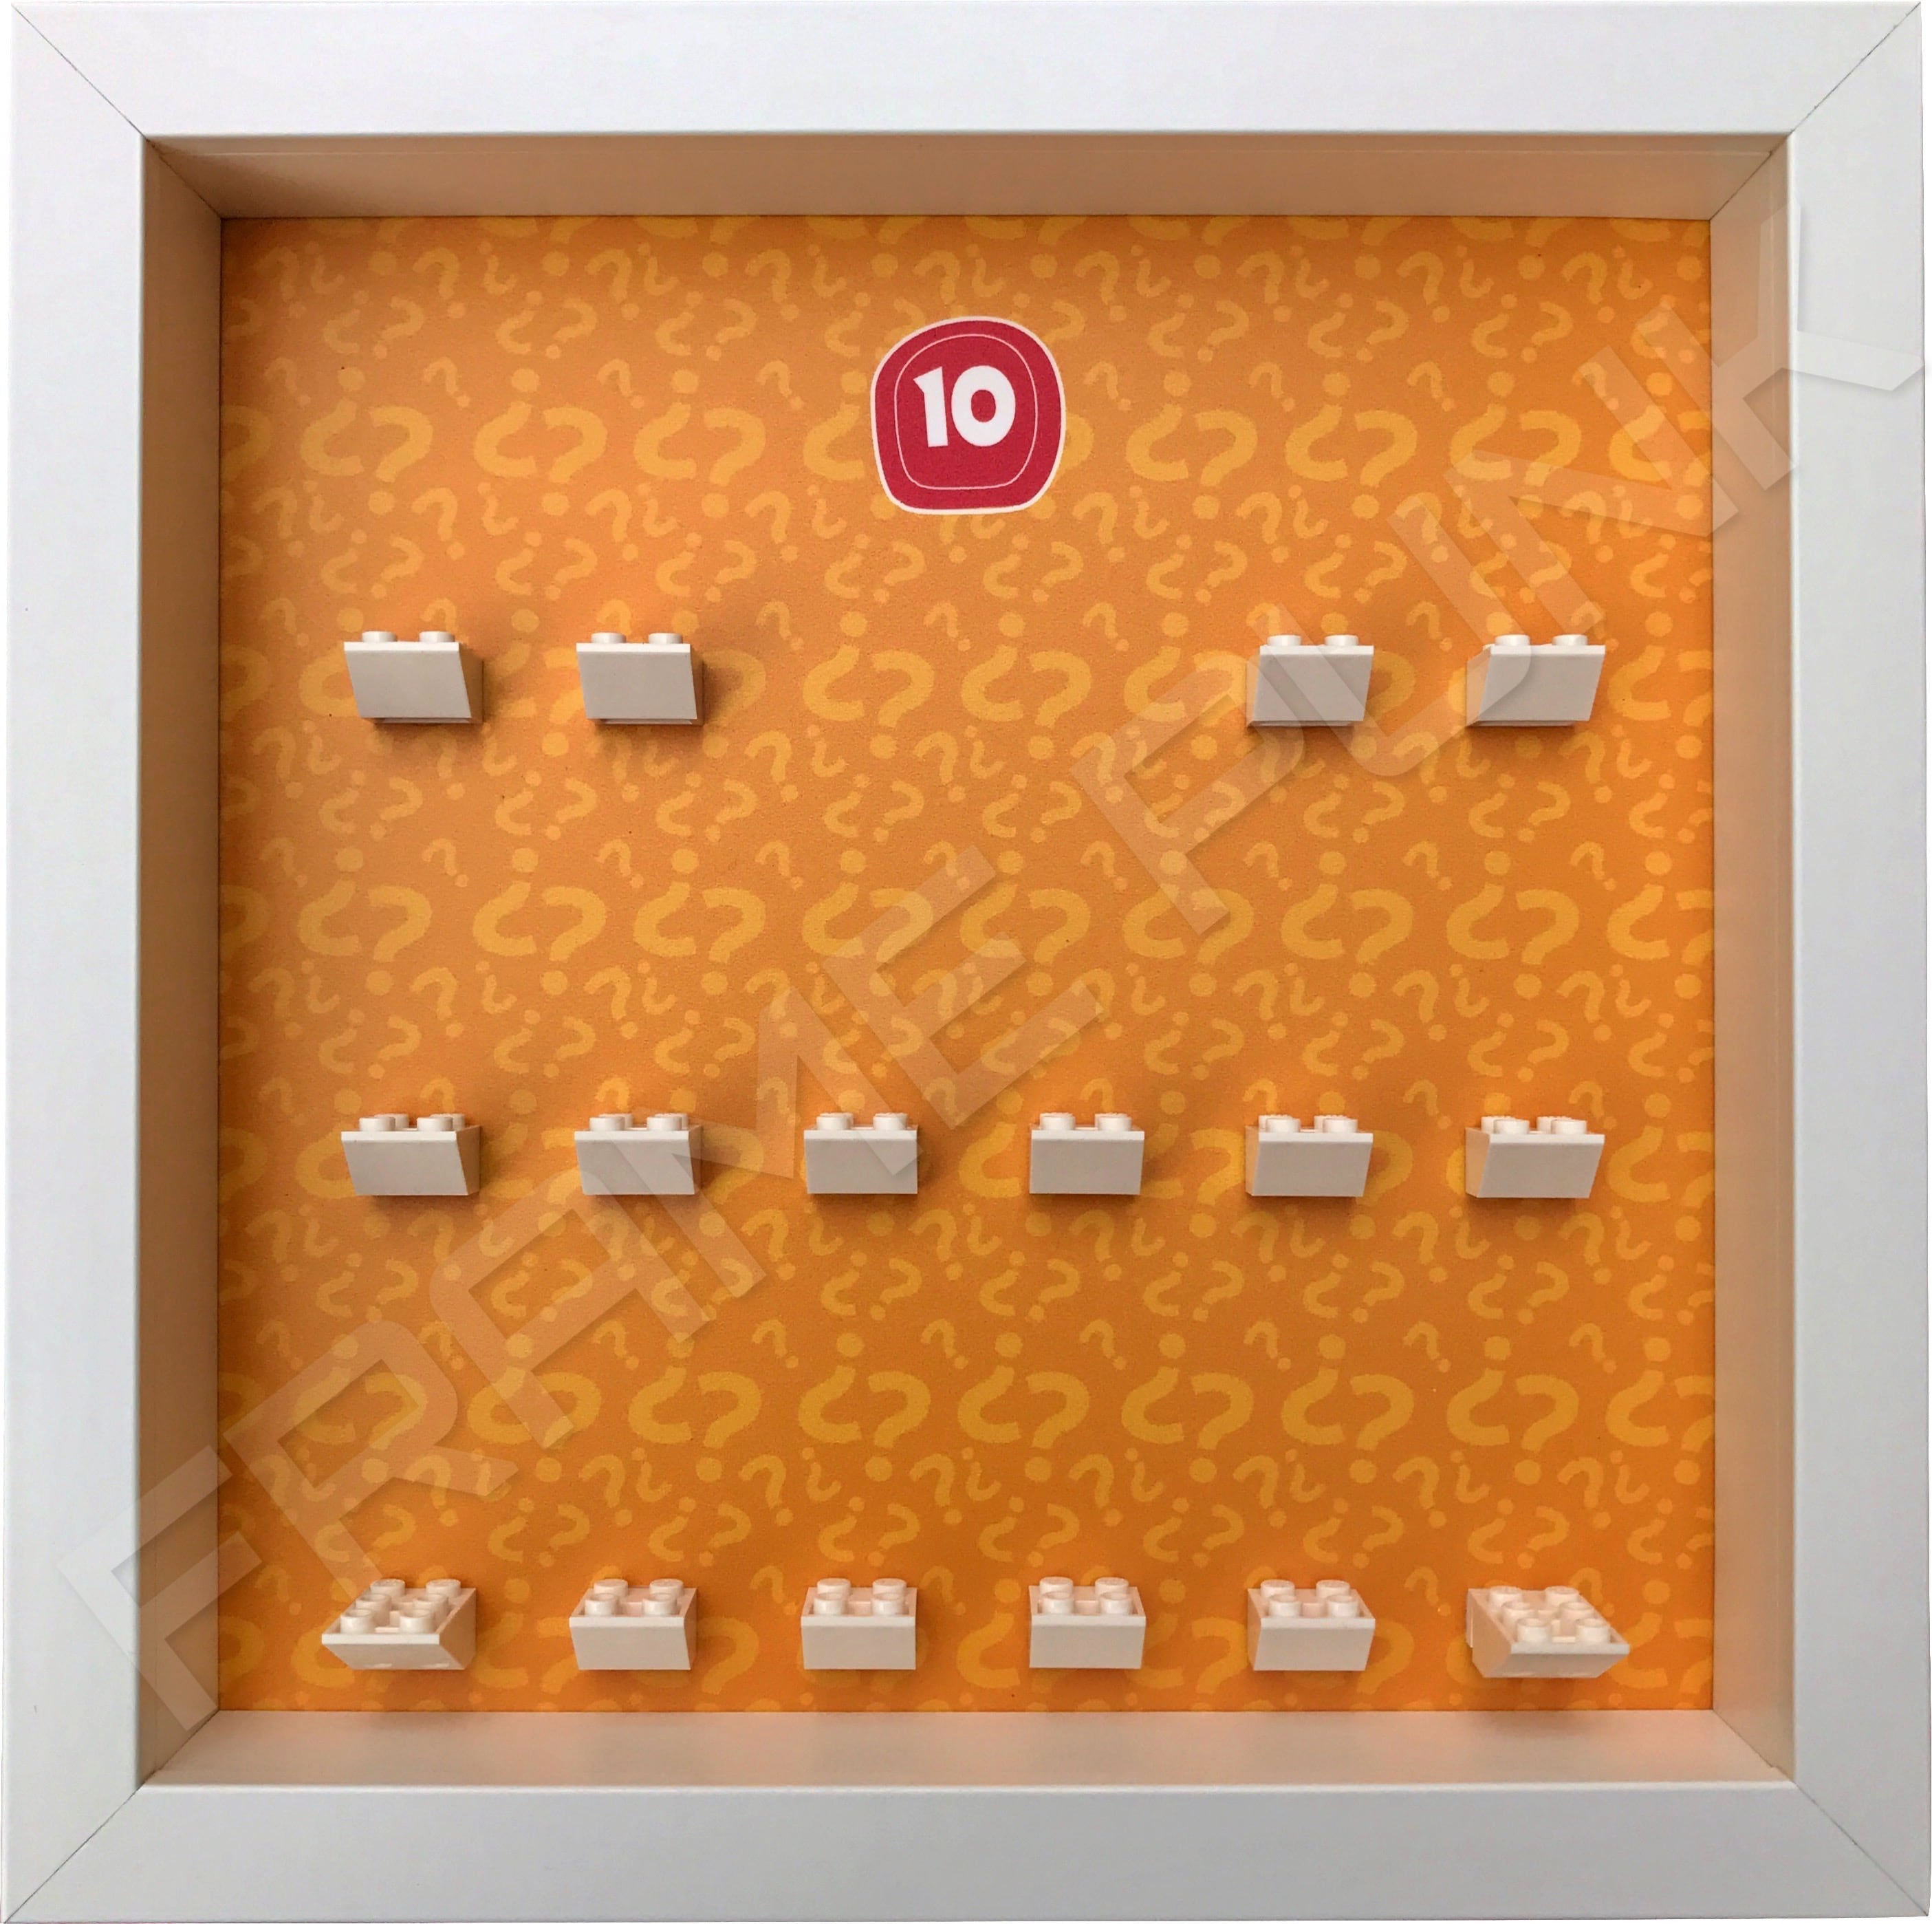 Lego minifigures series 10 display frame